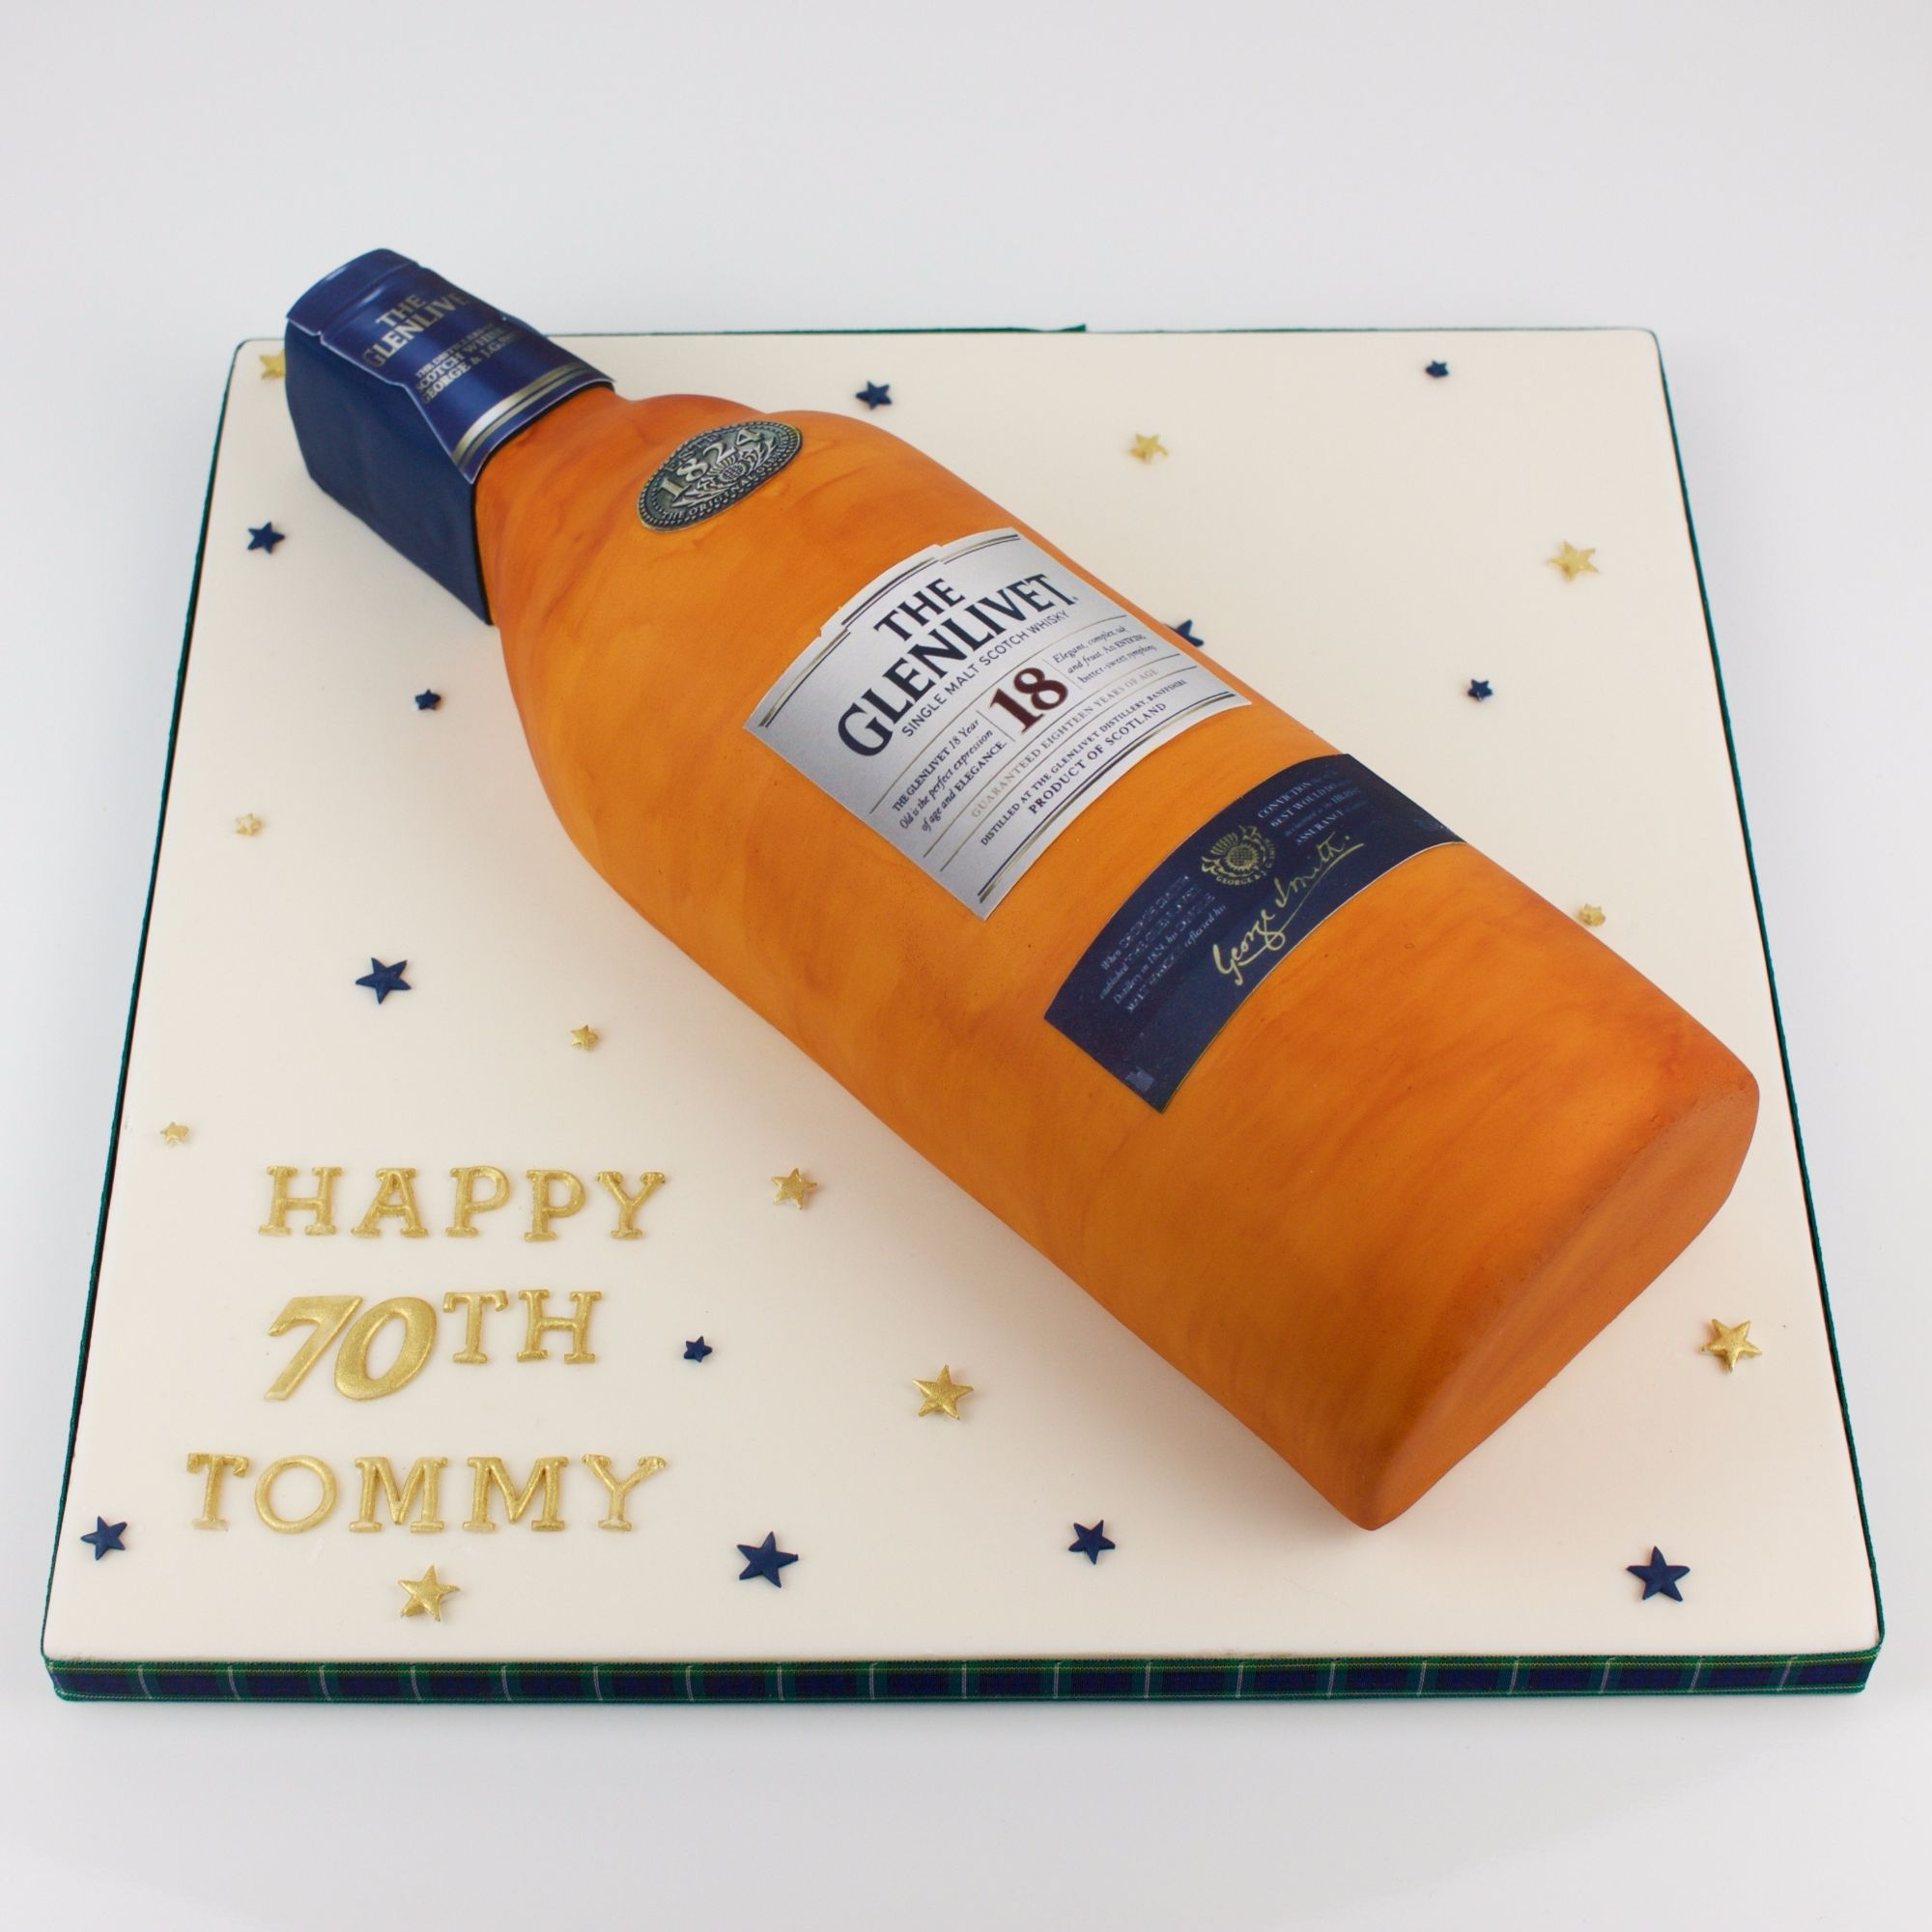 Whisky bottle cake.